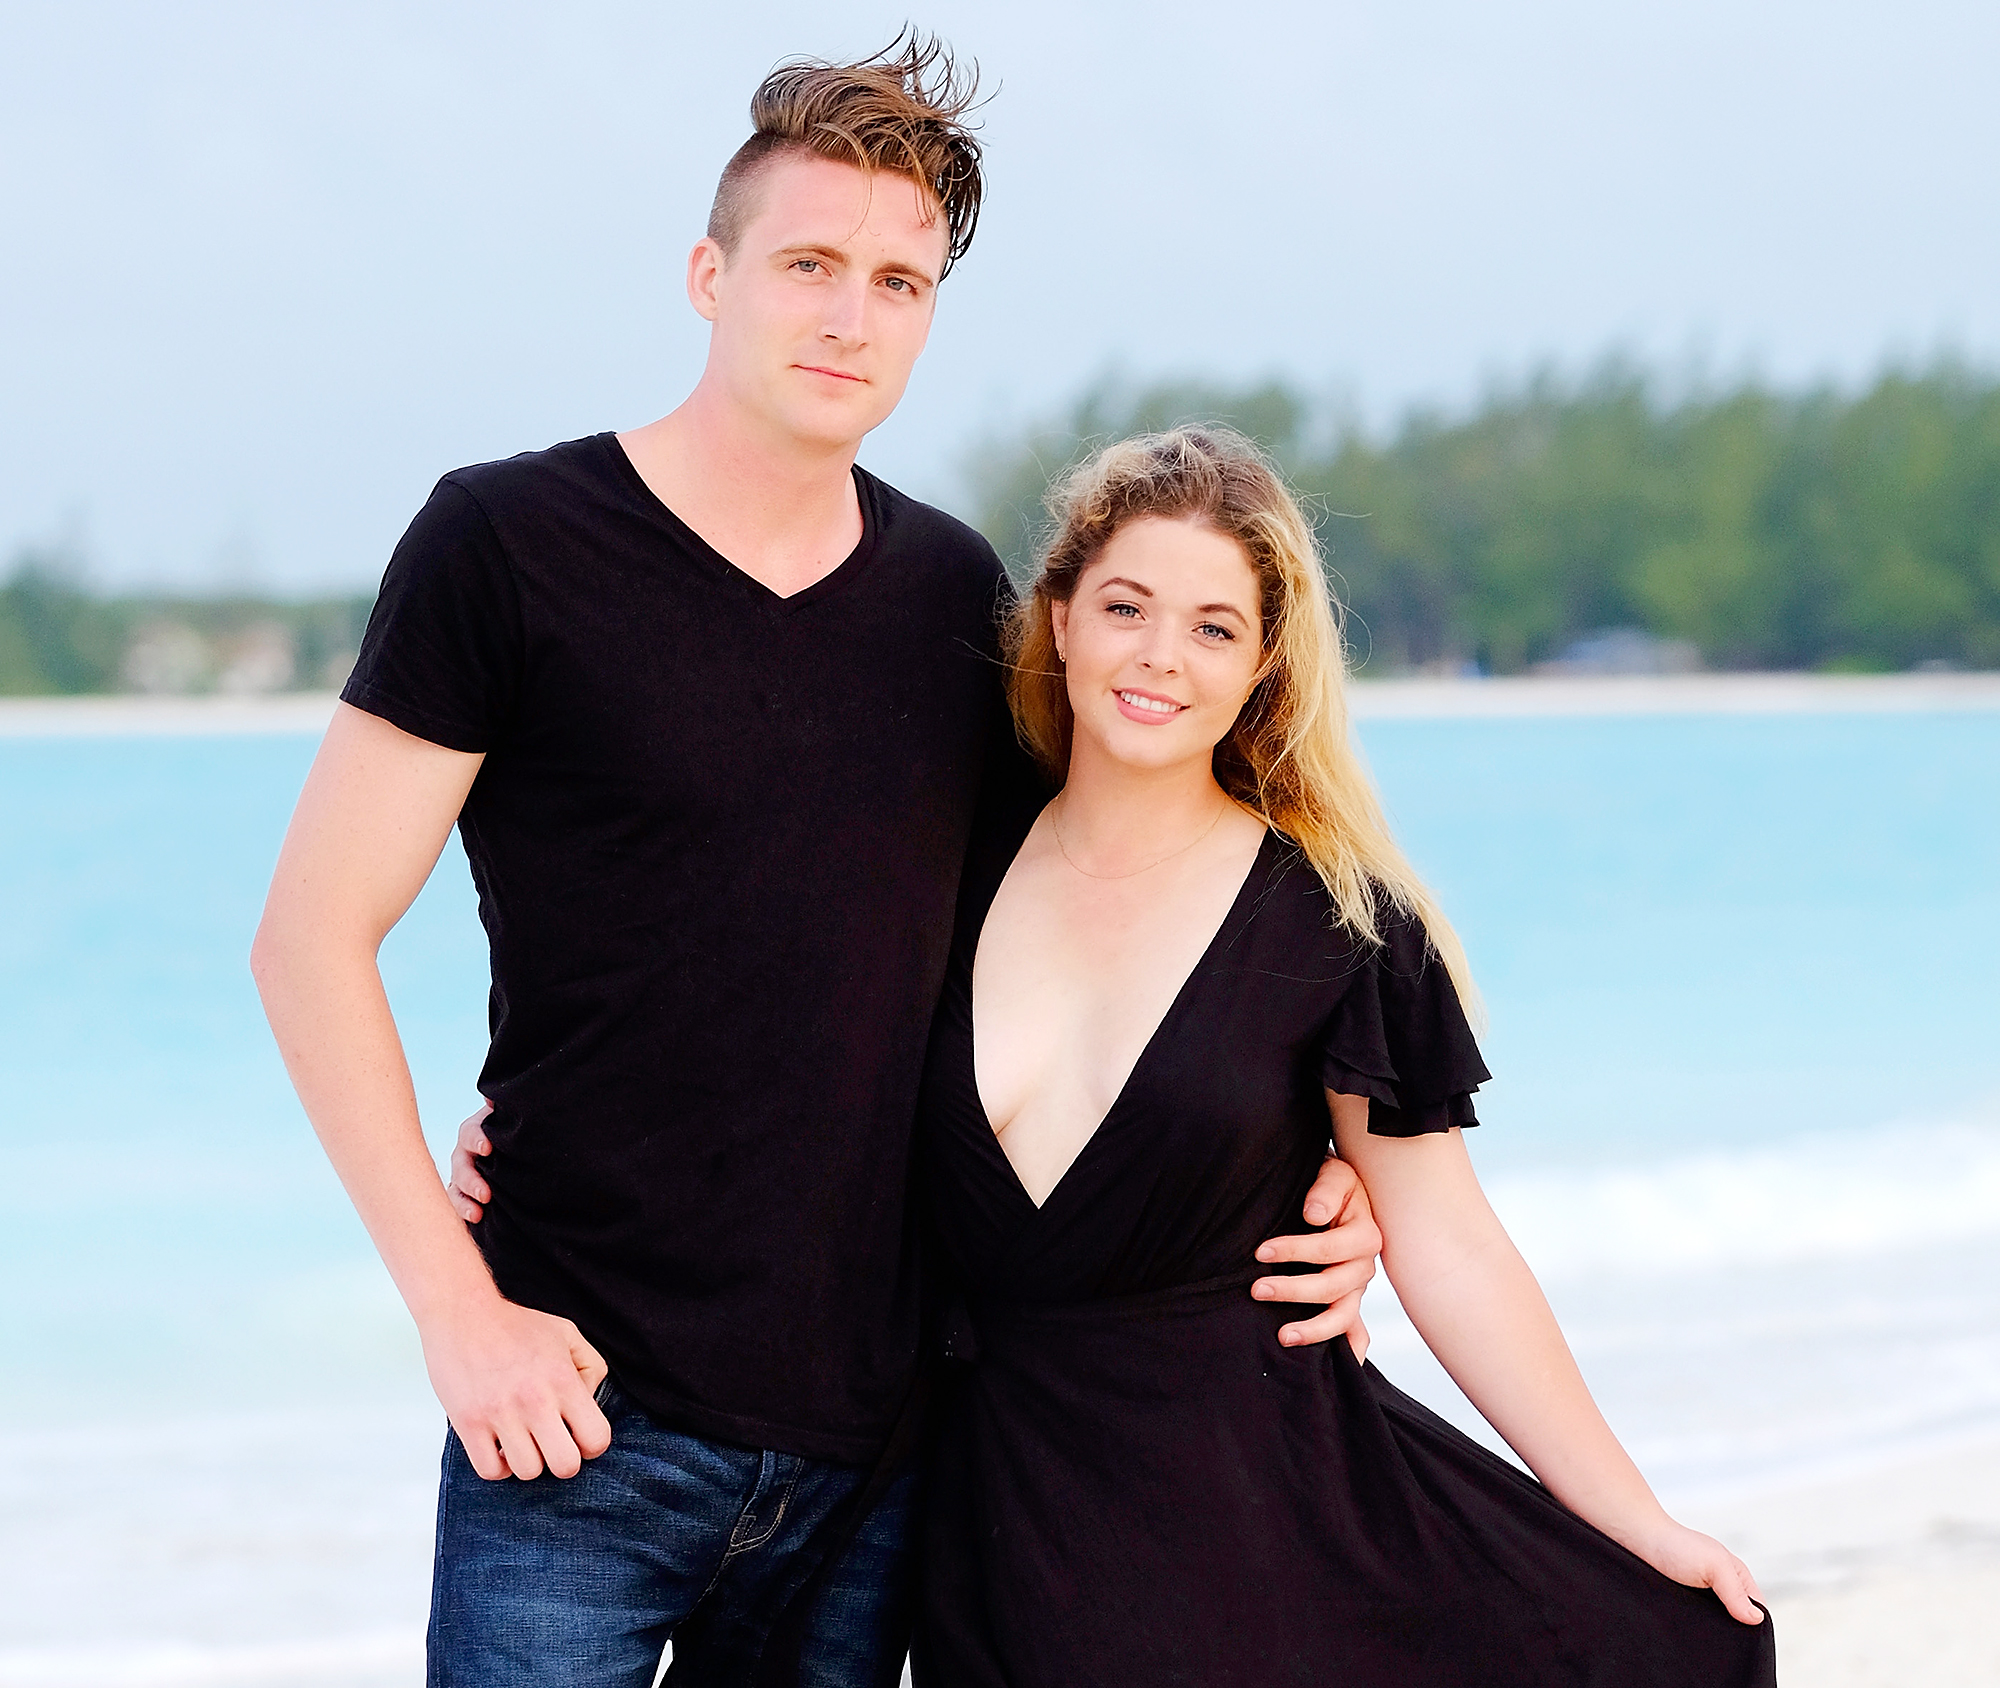 'Pretty Little Liars' Star Sasha Pieterse Marries Hudson Sheaffer In Ireland